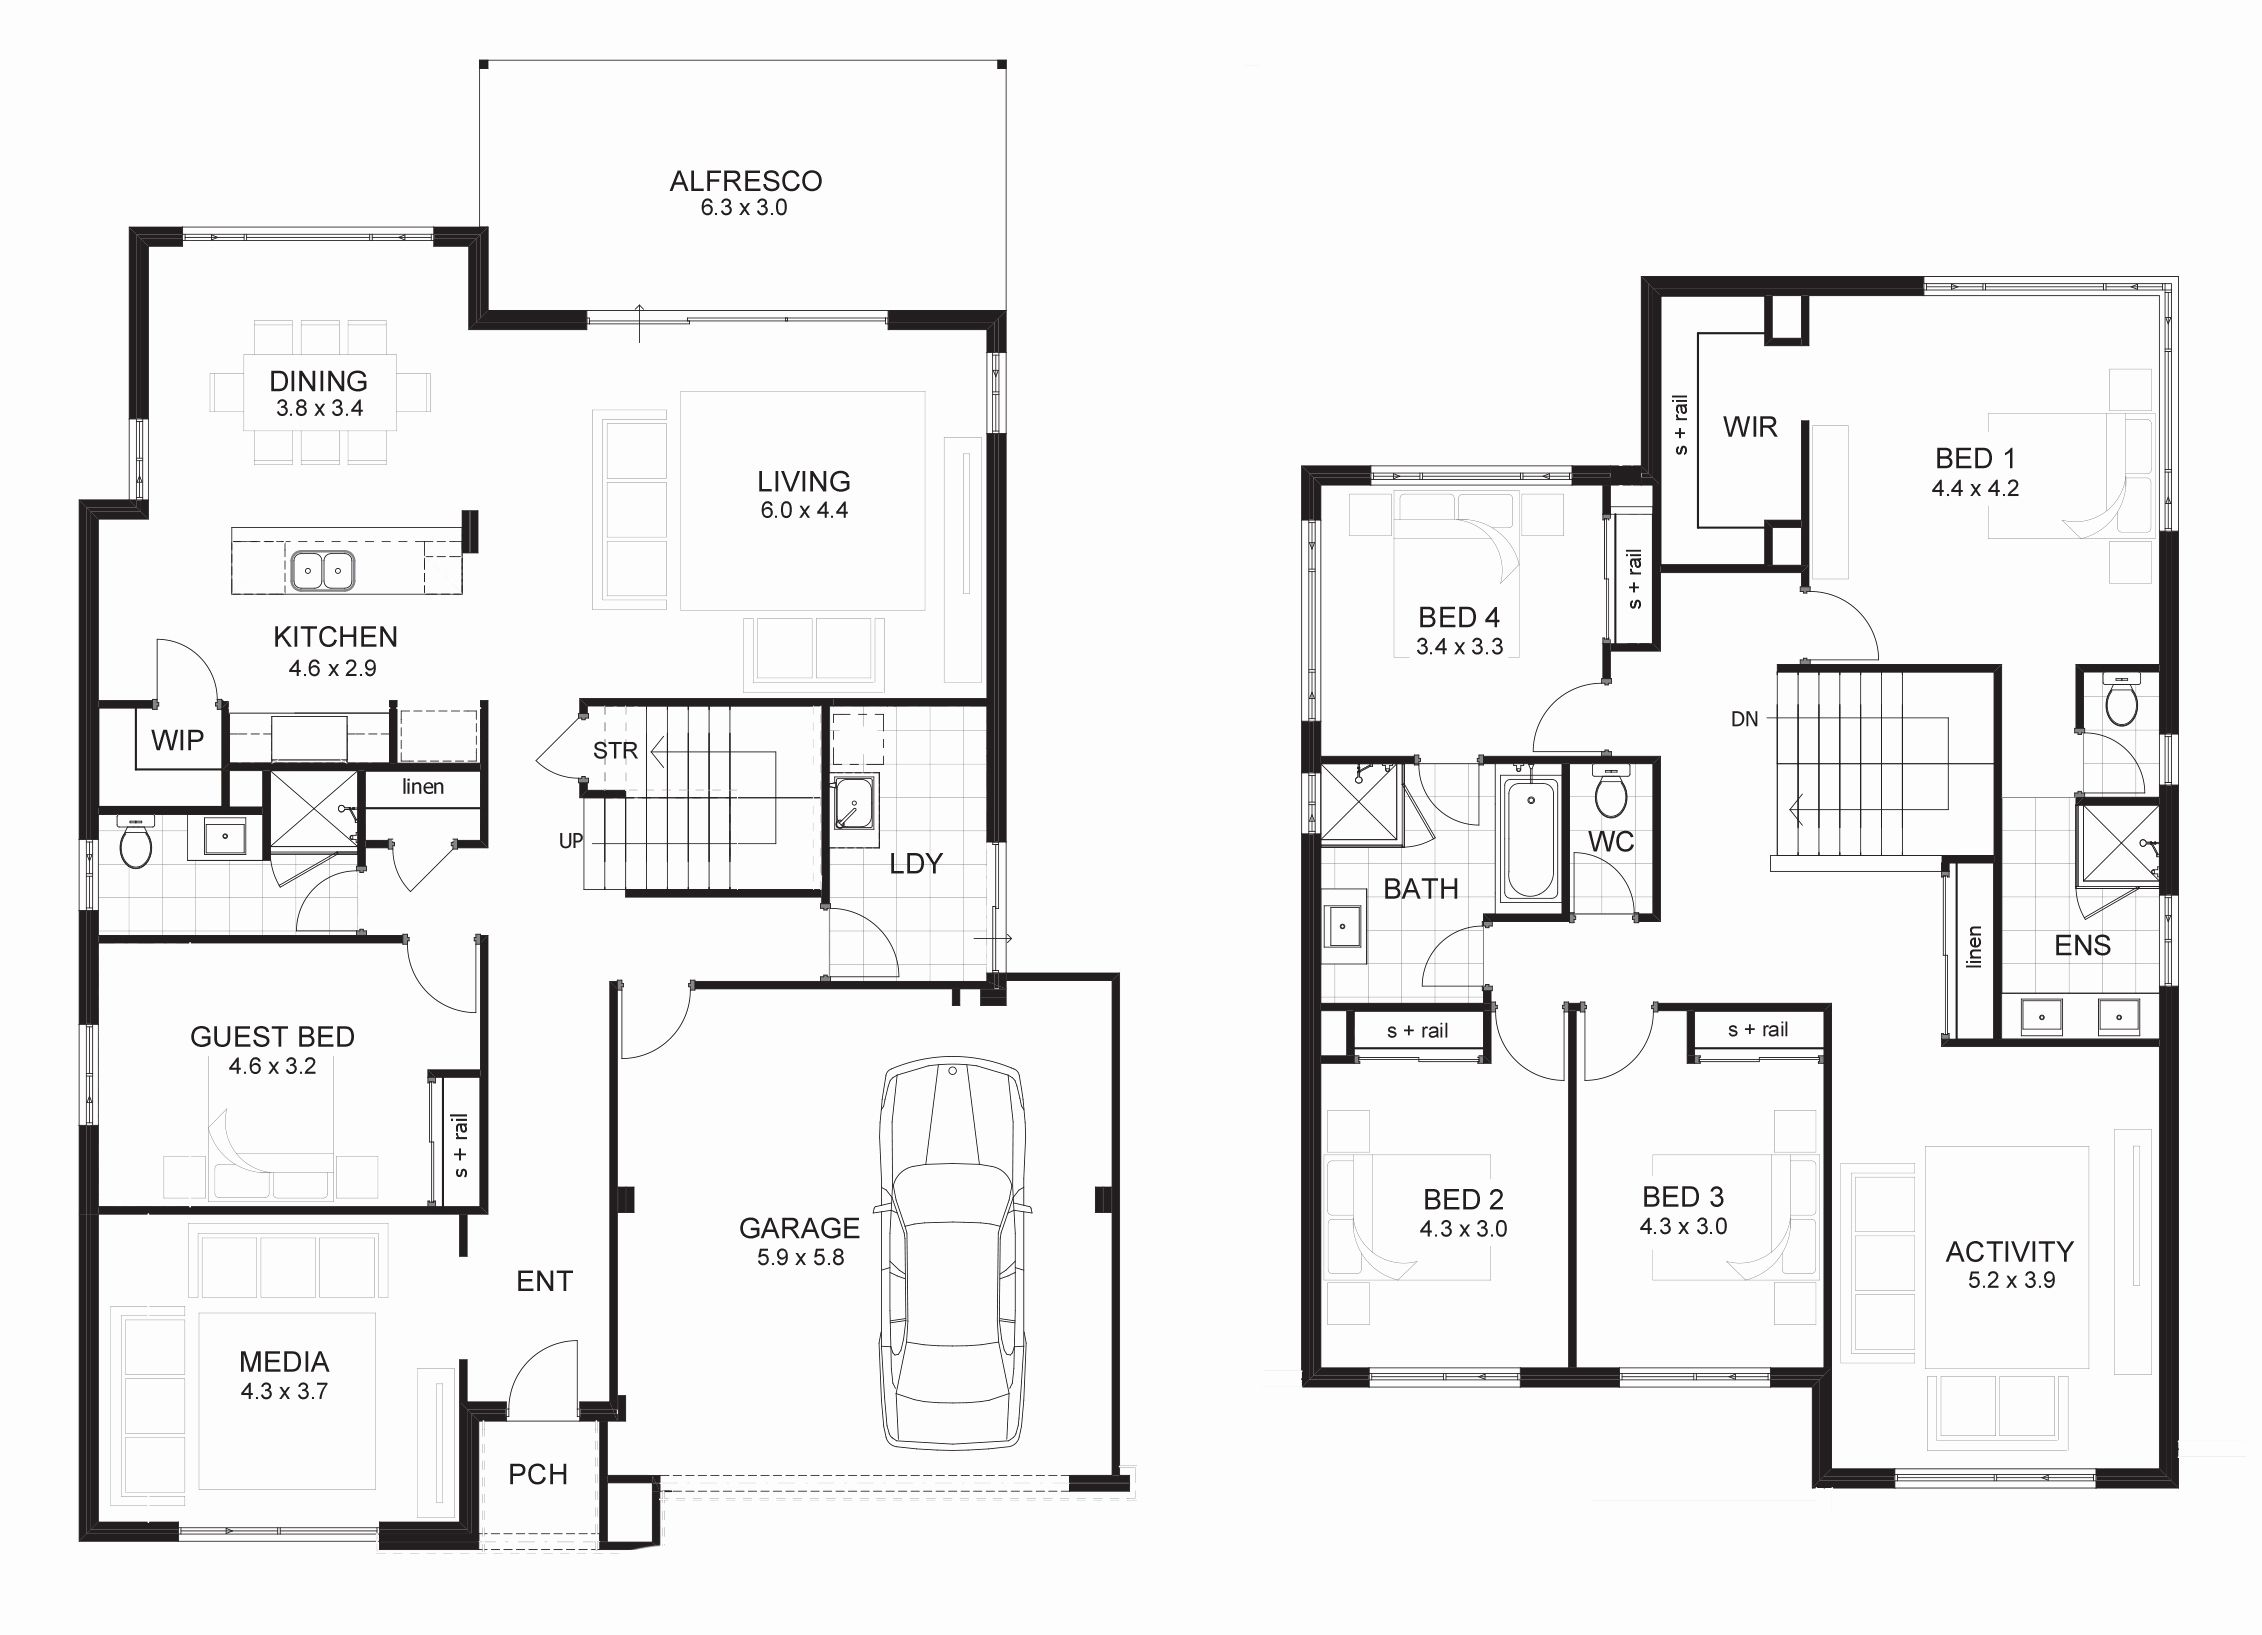 2 Storey House Floor Plan Dwg Inspirational Residential Building Plans Dwg Storey House Floor House Plans Australia 5 Bedroom House Plans 6 Bedroom House Plans